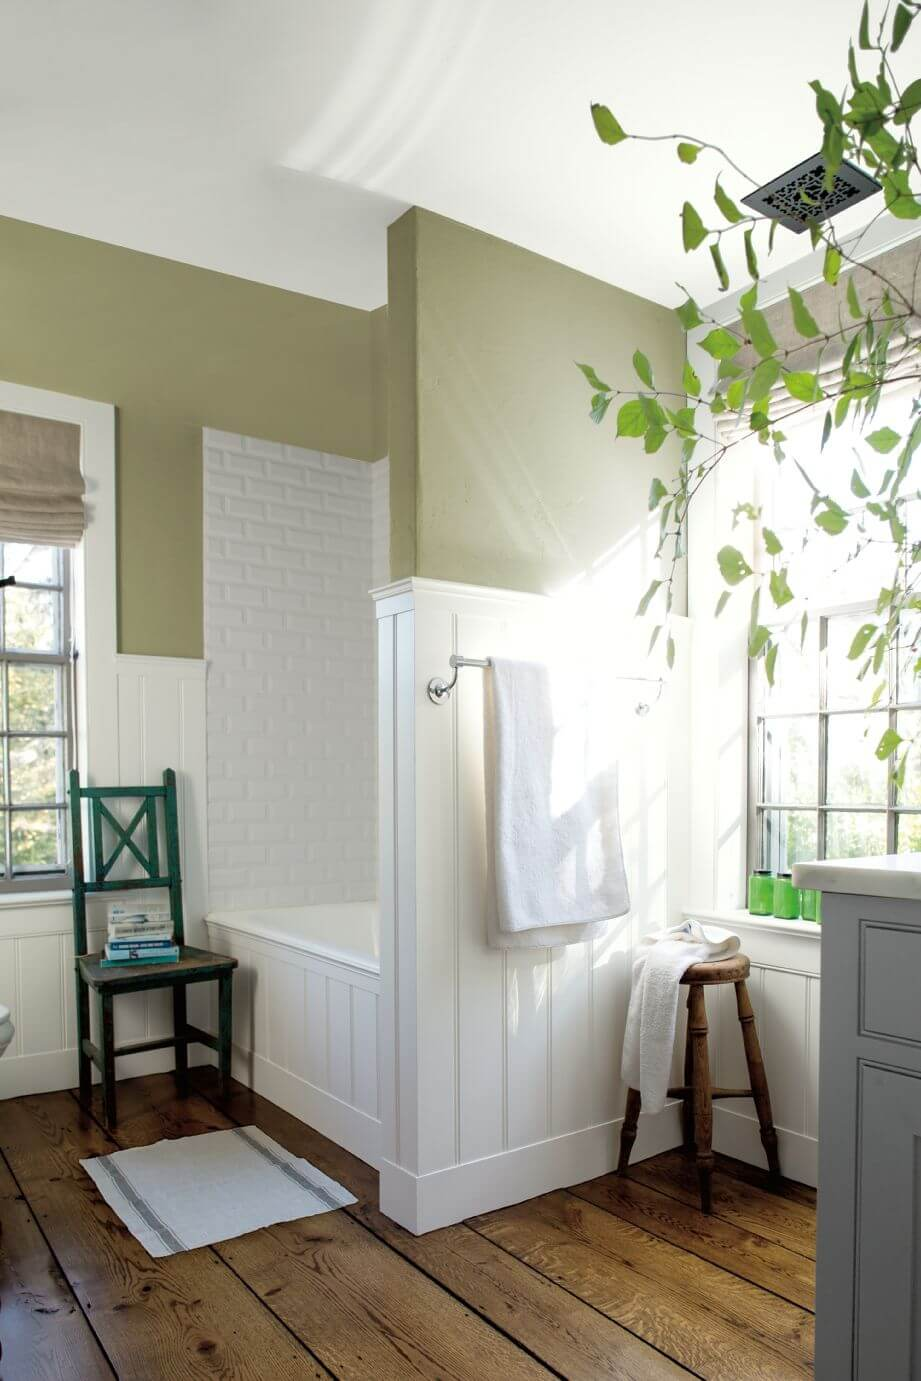 What Are Good Paint Colors For Bathrooms